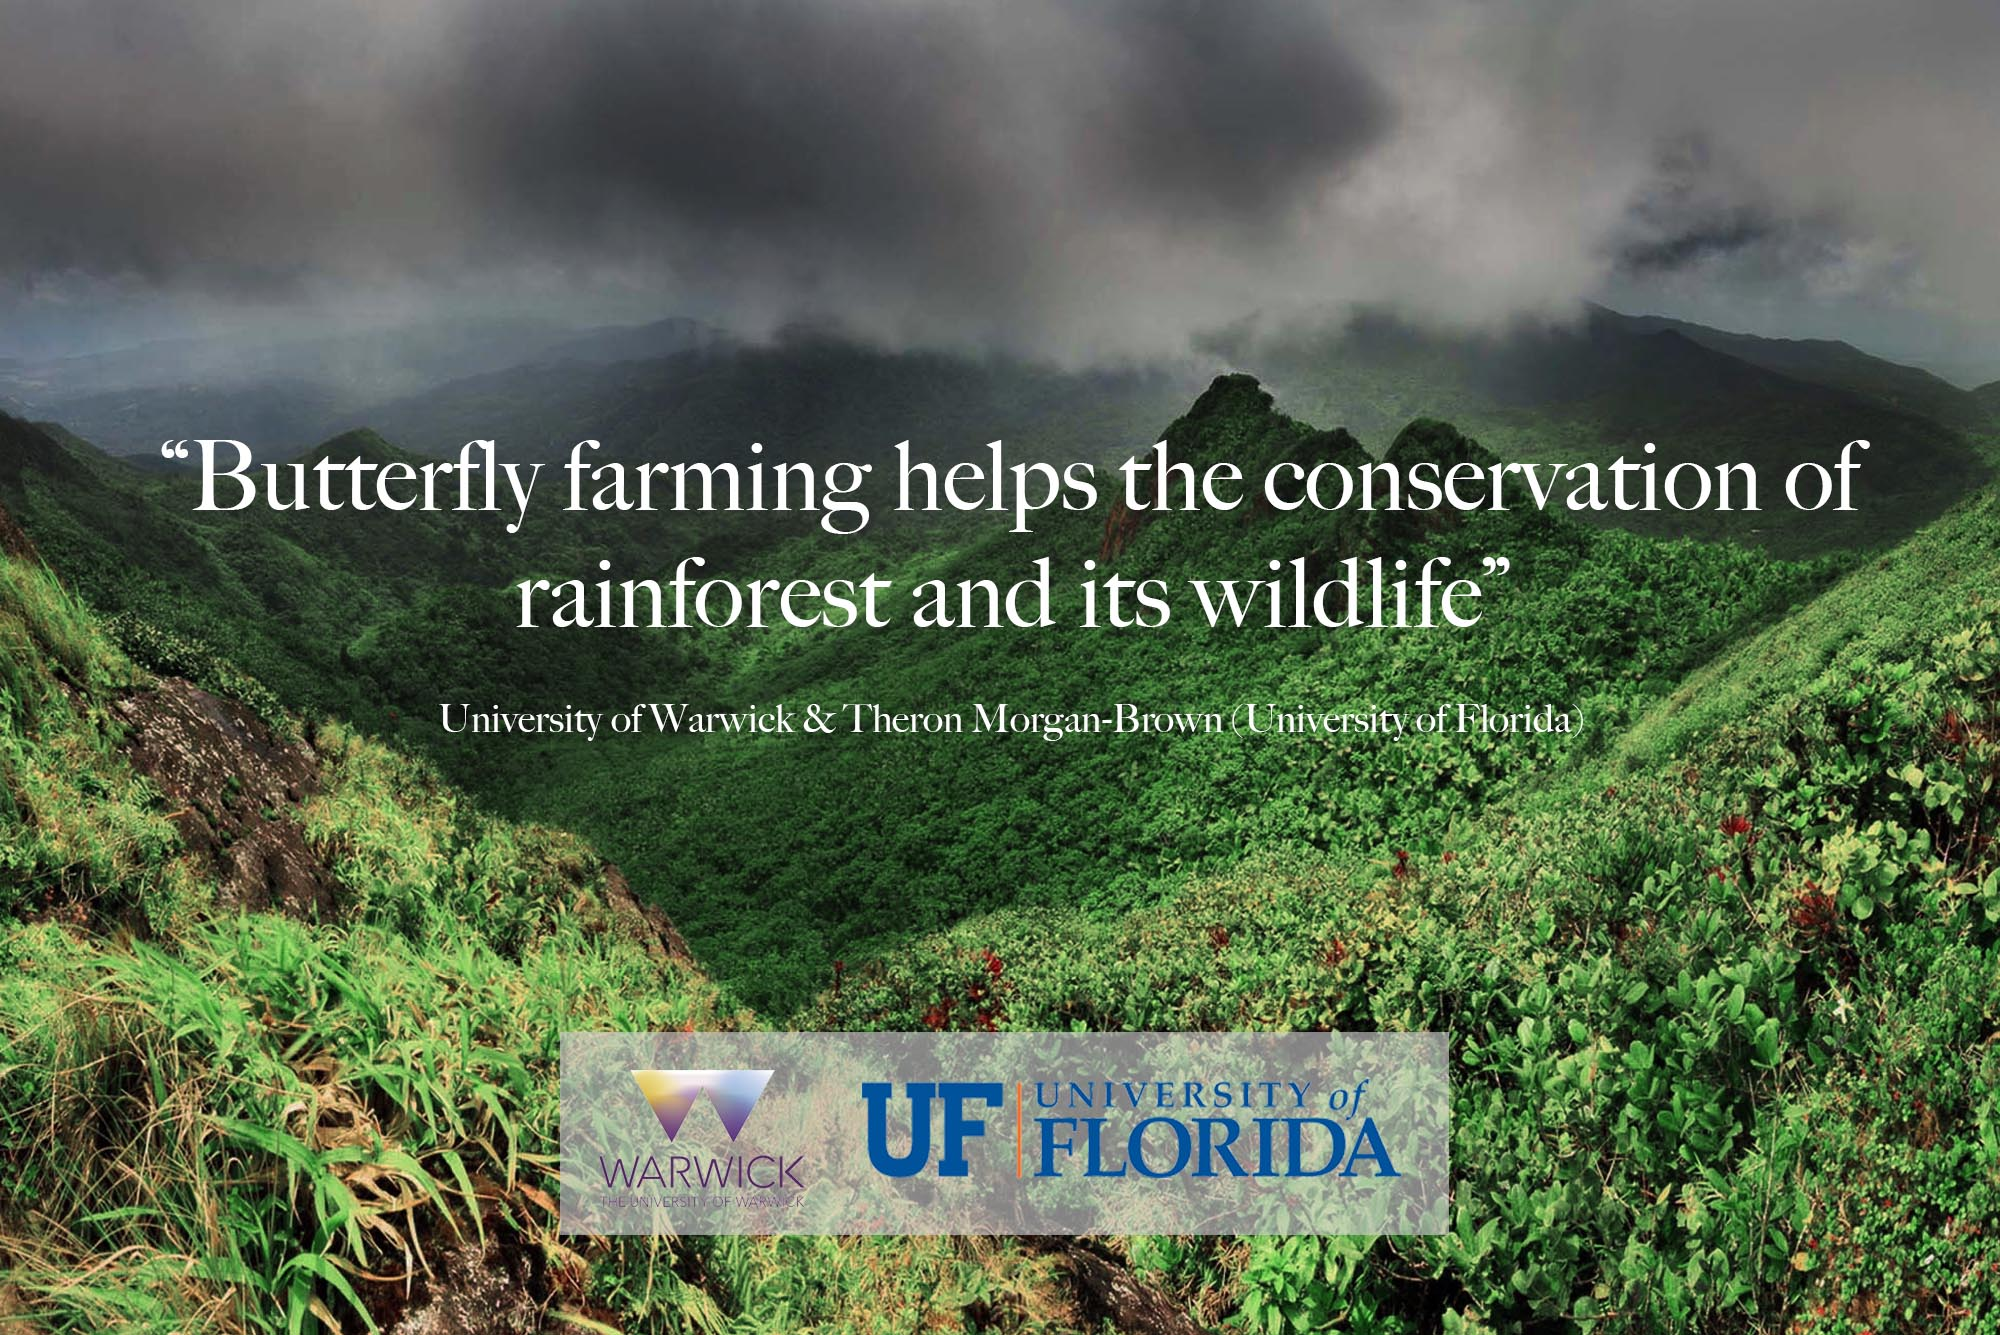 Butterfly farming helps the conservations of rainforest and its wildlife